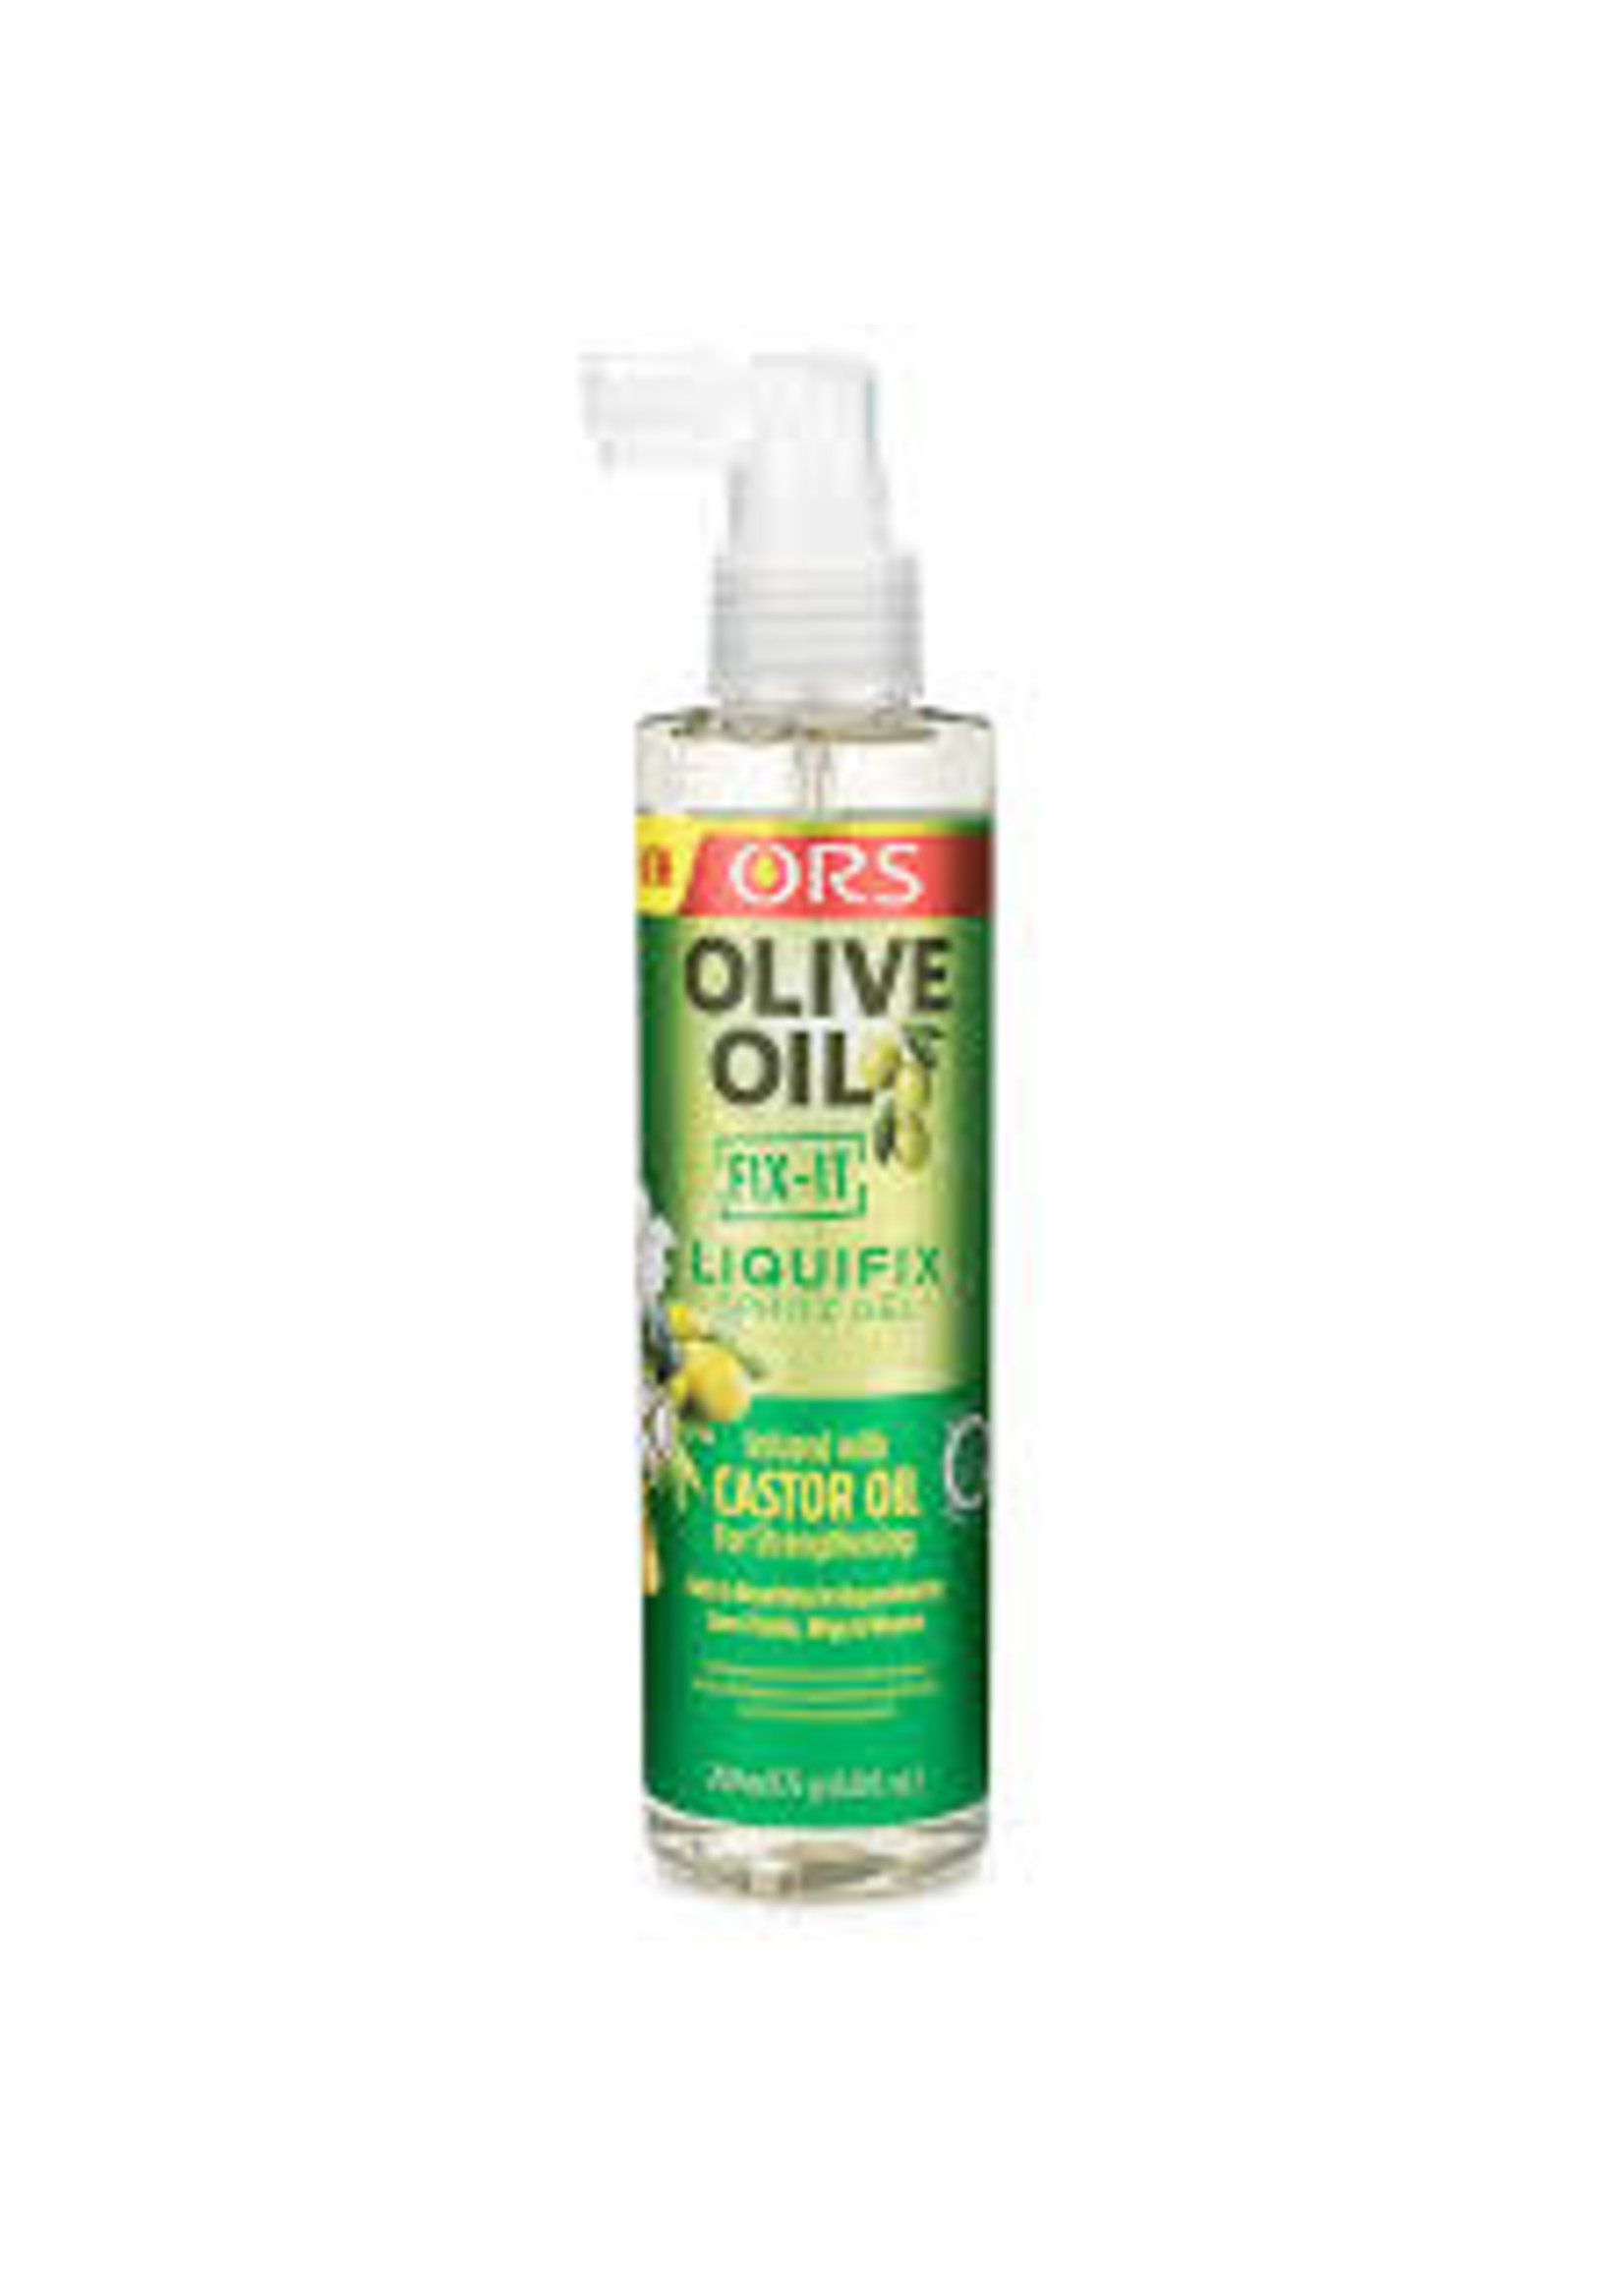 ORS OLIVE OIL FIX IT LIQUIFIX SPRITZ GEL SPRAY